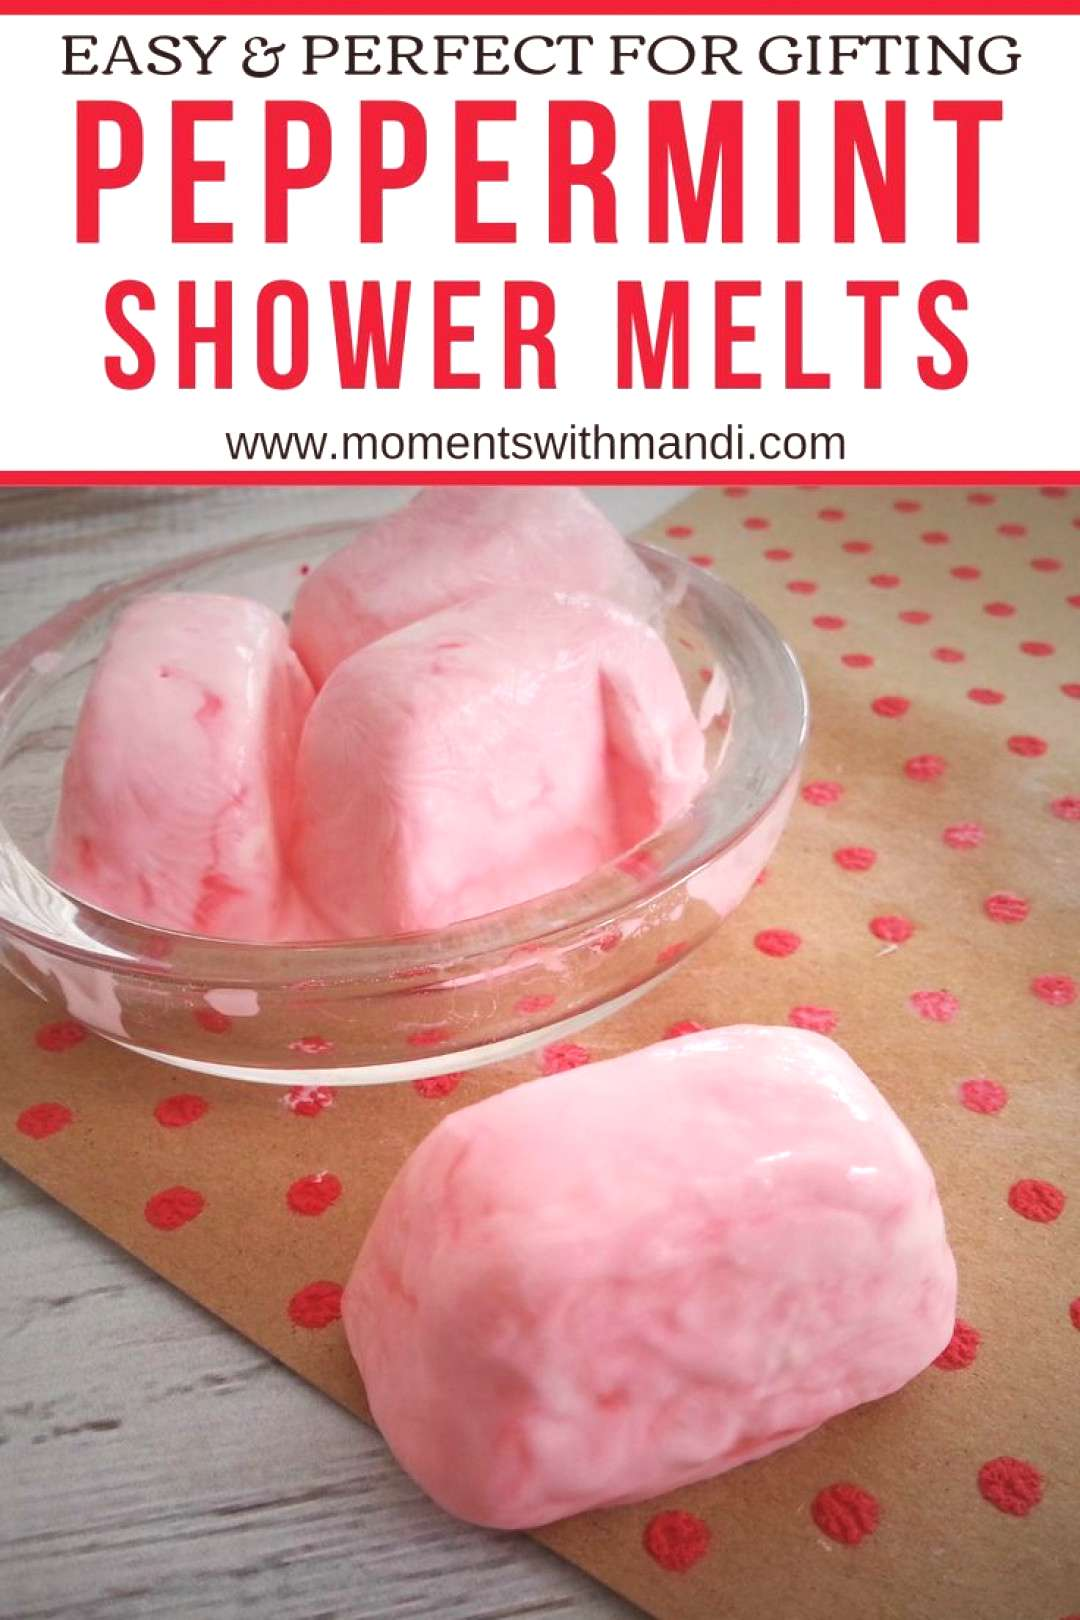 Easy and perfect for homemade gifts, these DIY Peppermint Shower Melts smell amazing!